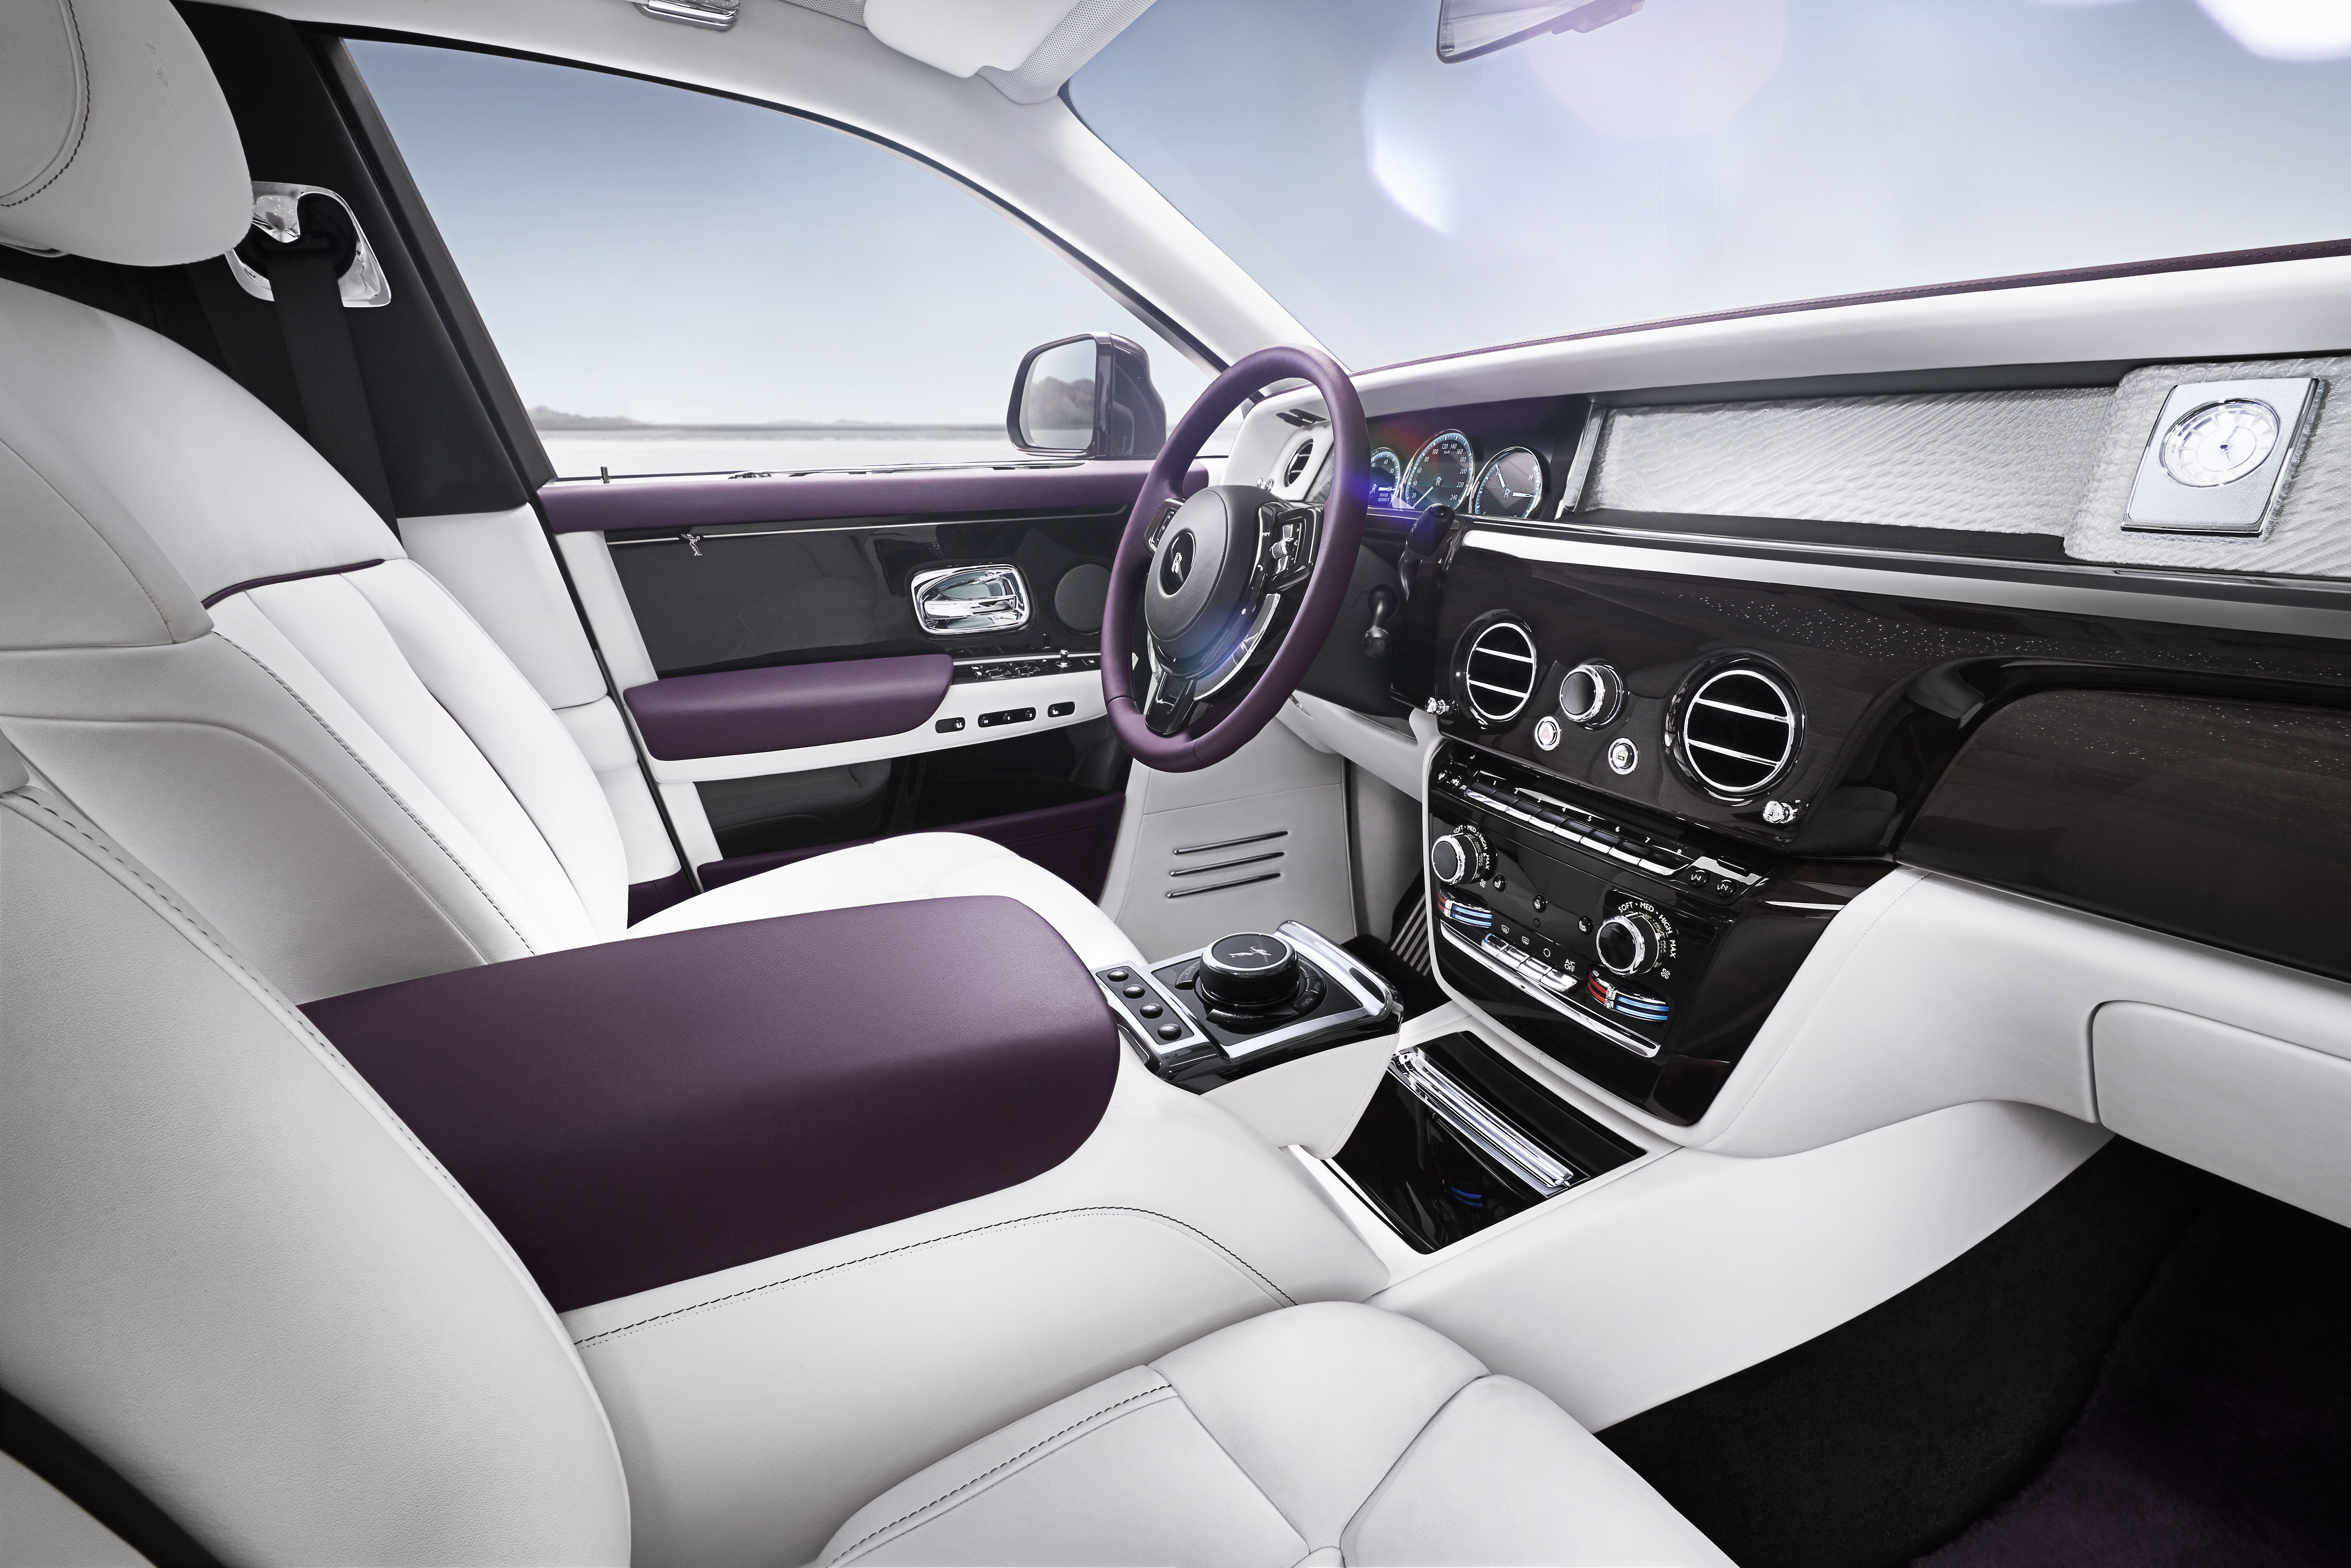 Rolls Royce's New Phantom VIII: The Best car in the world